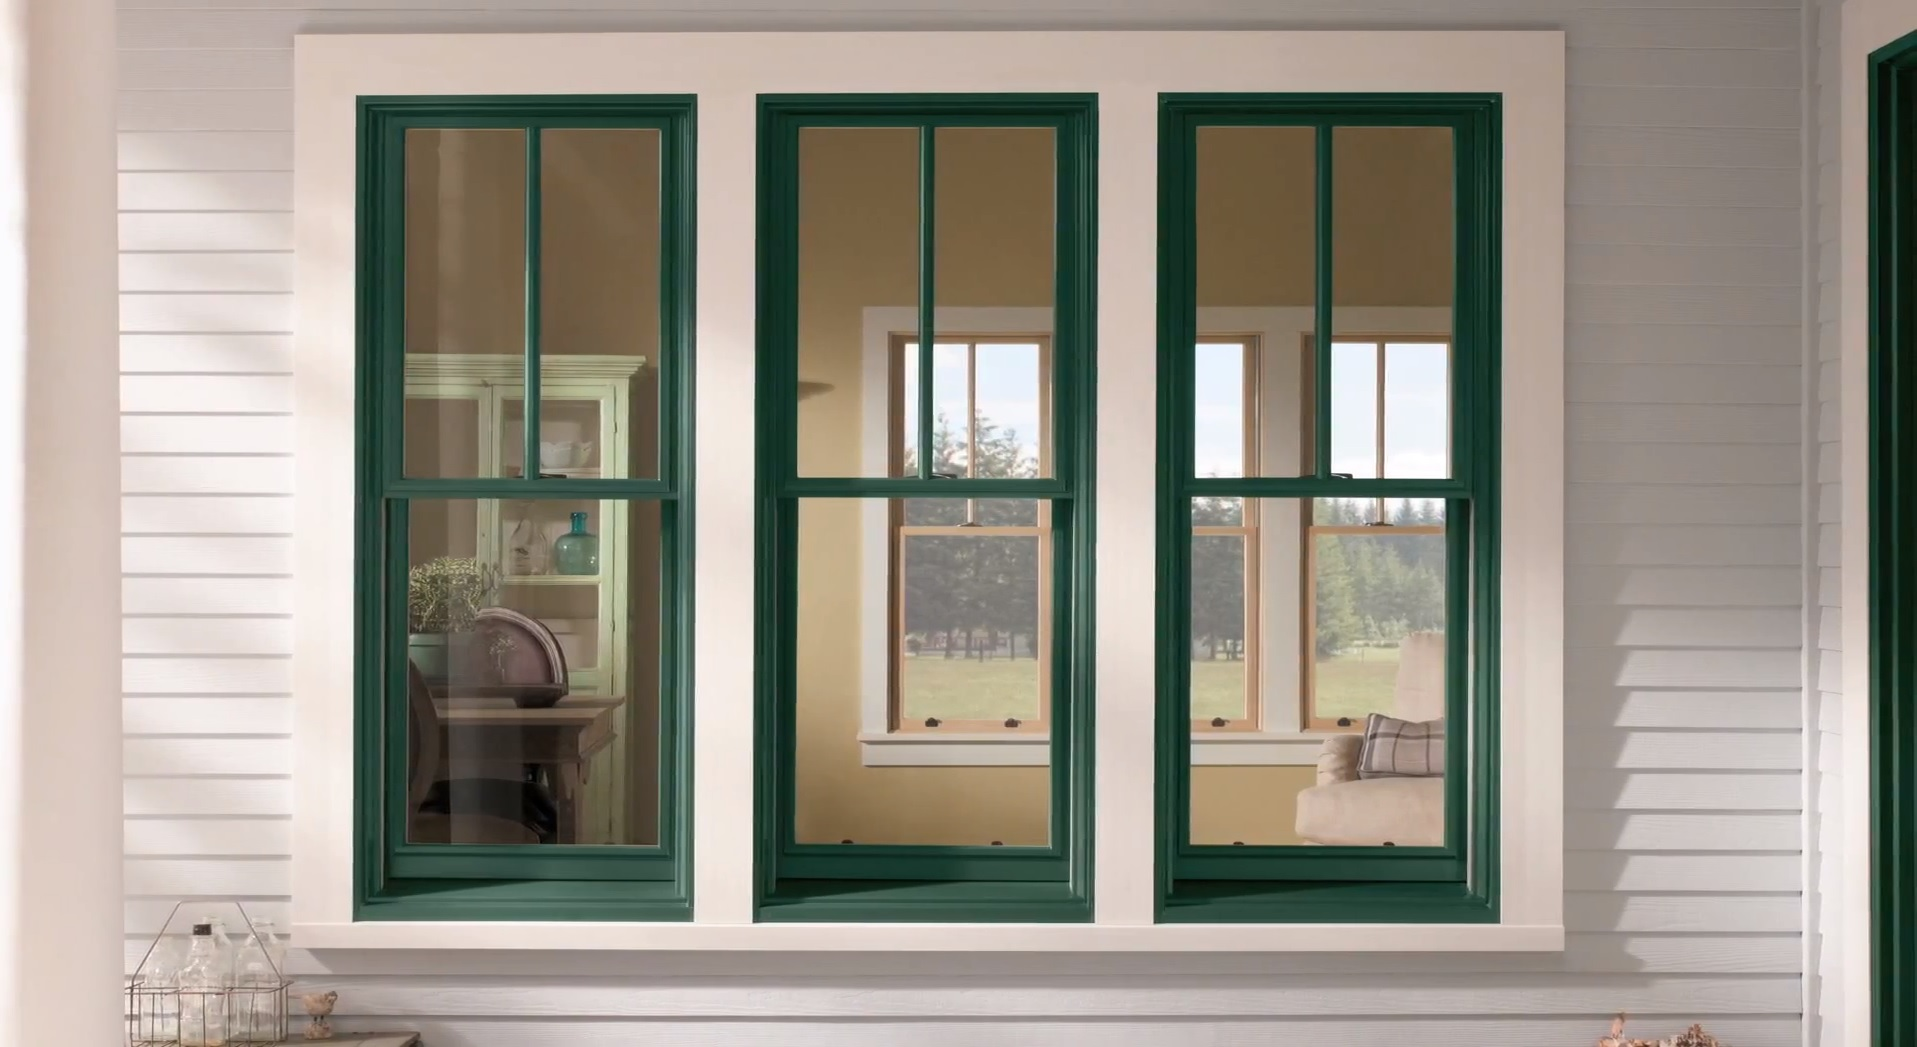 Cost to replace windows in old house - Double Hung Windows Cost Guide Contractorculture